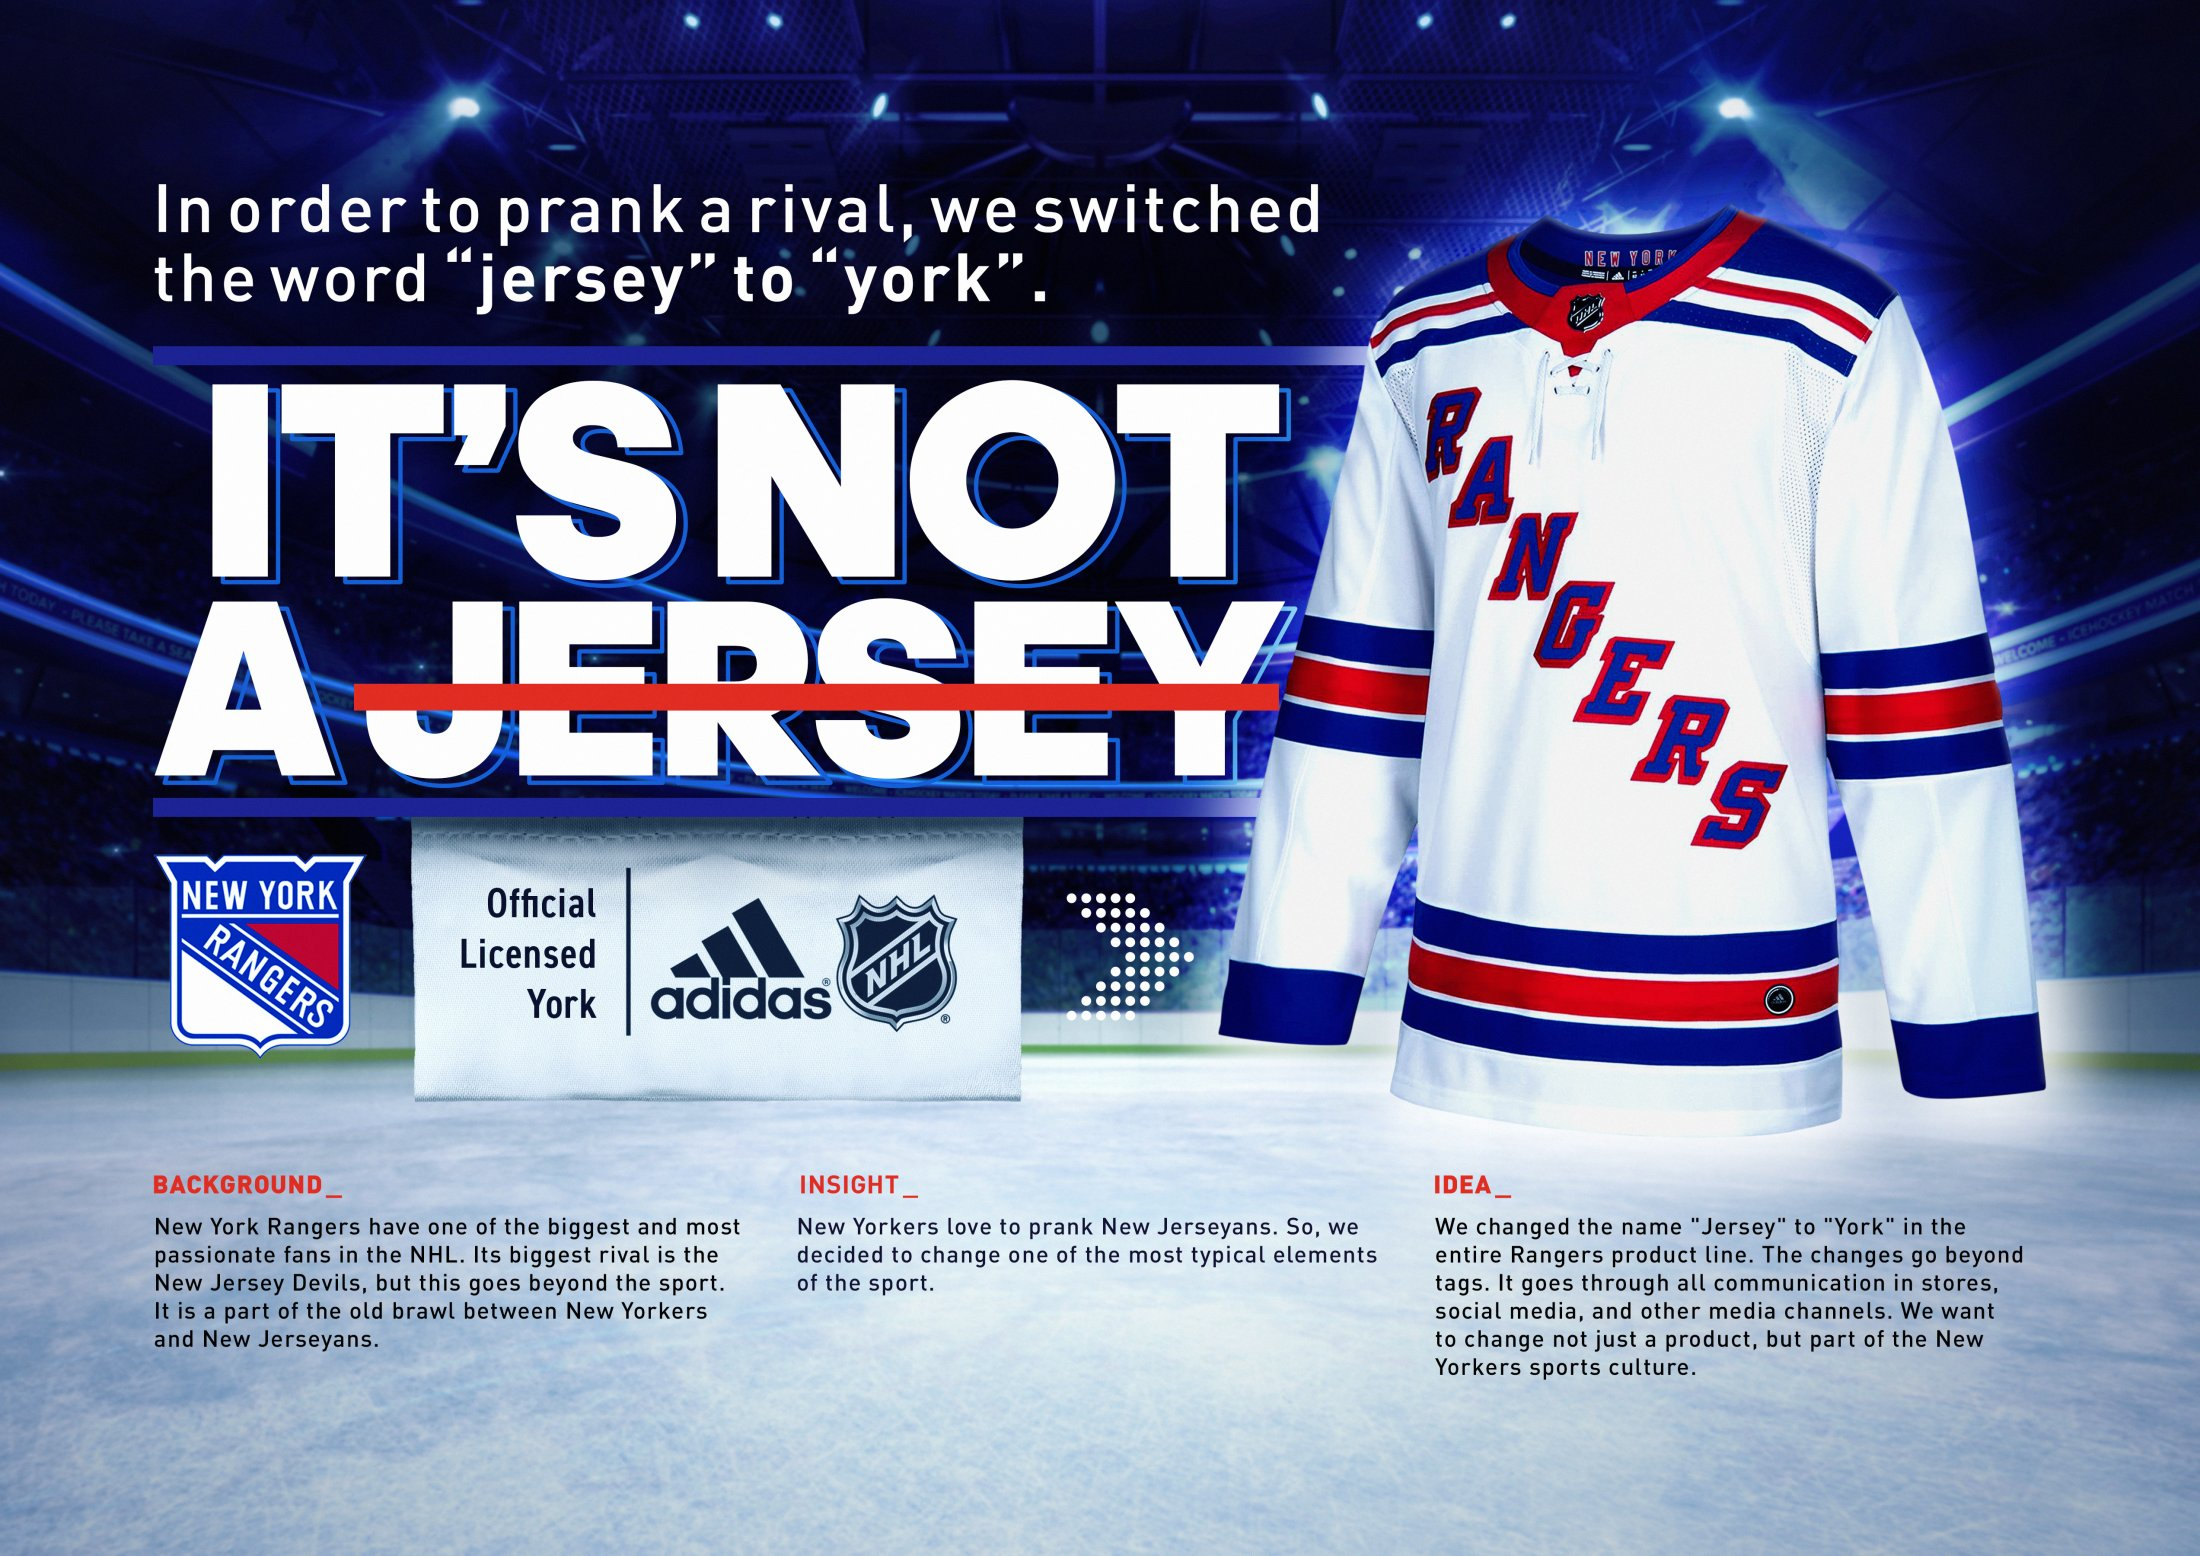 Thumbnail for It's not a jersey